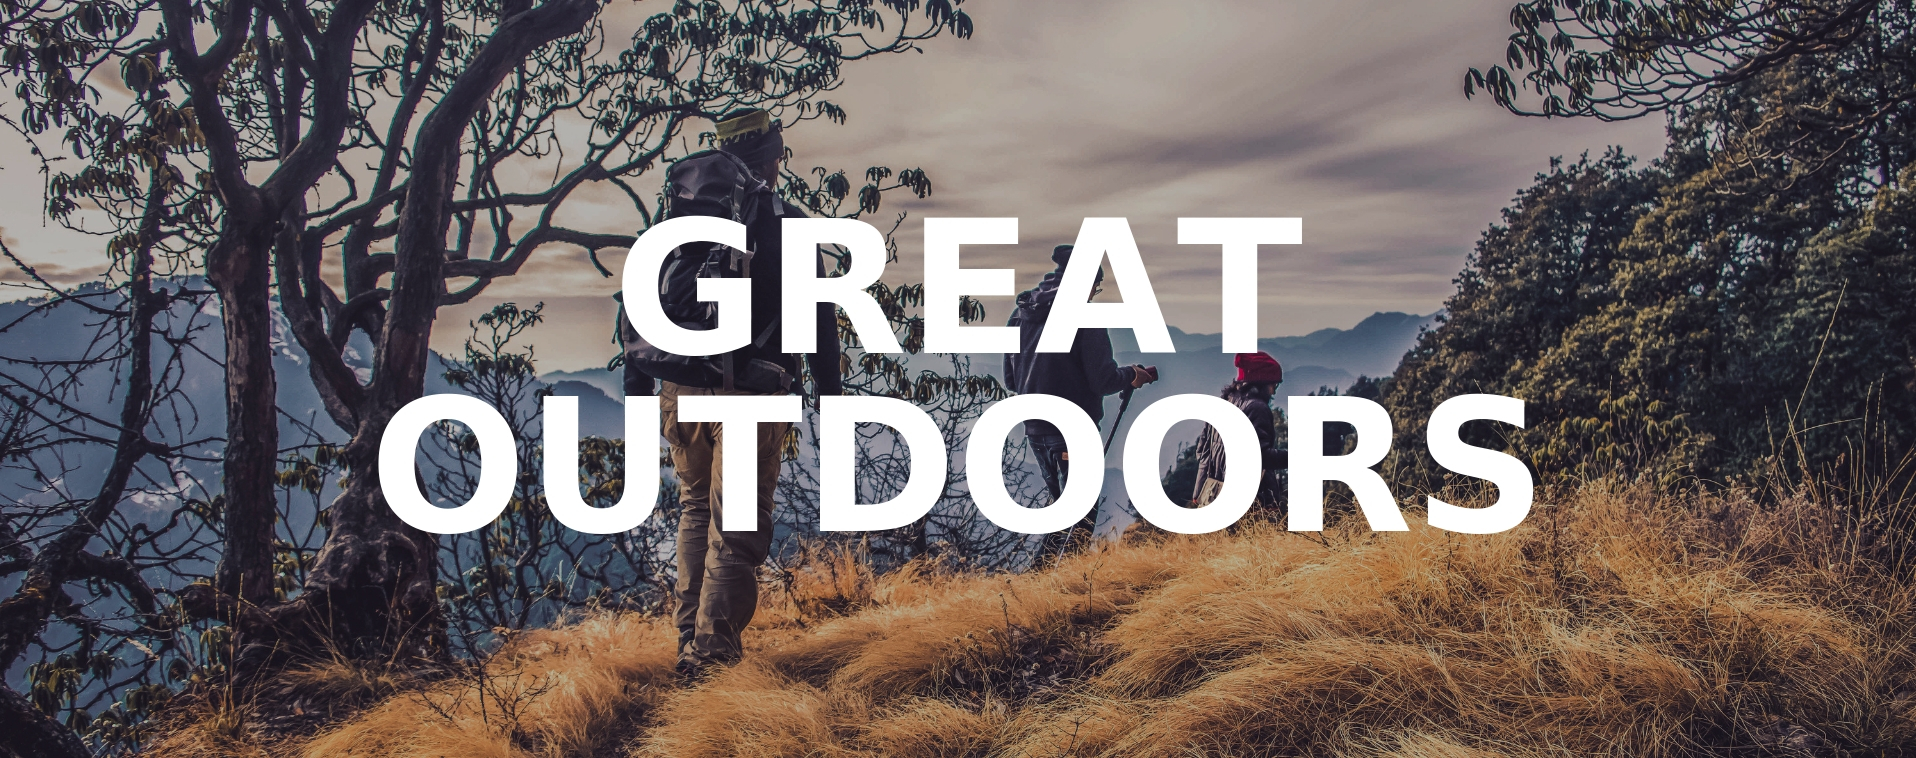 Great Outdoors 1916x758